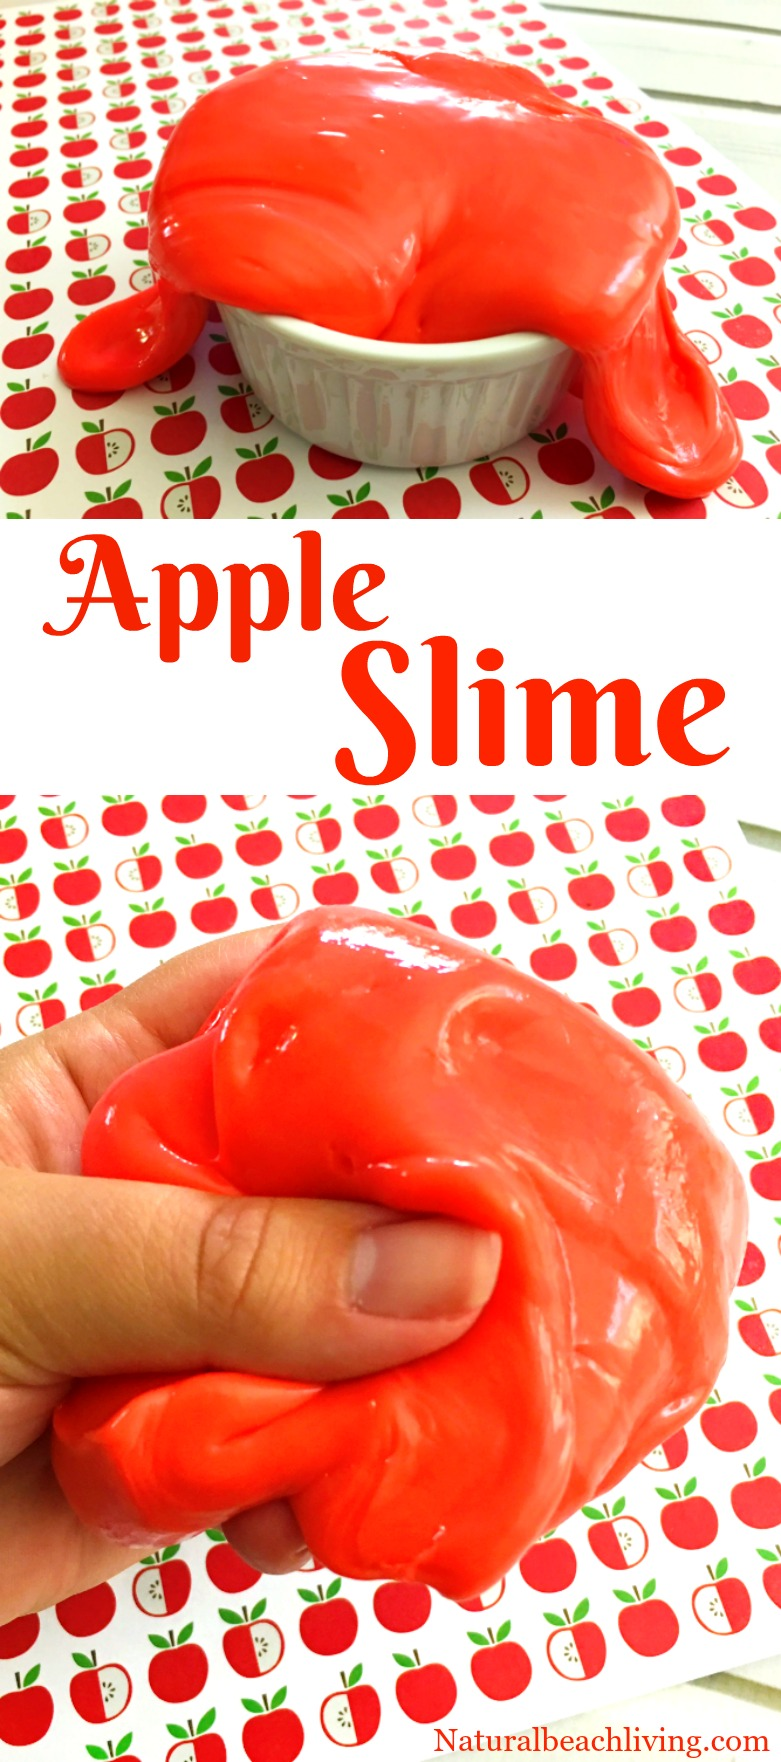 How to Make Apple Jiggly Slime, Slime Recipes, The Best Scented Slime Recipe, Jiggly Slime Recipe, Apple Scented Slime, Slime Recipes, Homemade Slime, Fall Sensory Play, Borax Slime for Kids Activities, #sensoryplay #Slime #slimerecipes